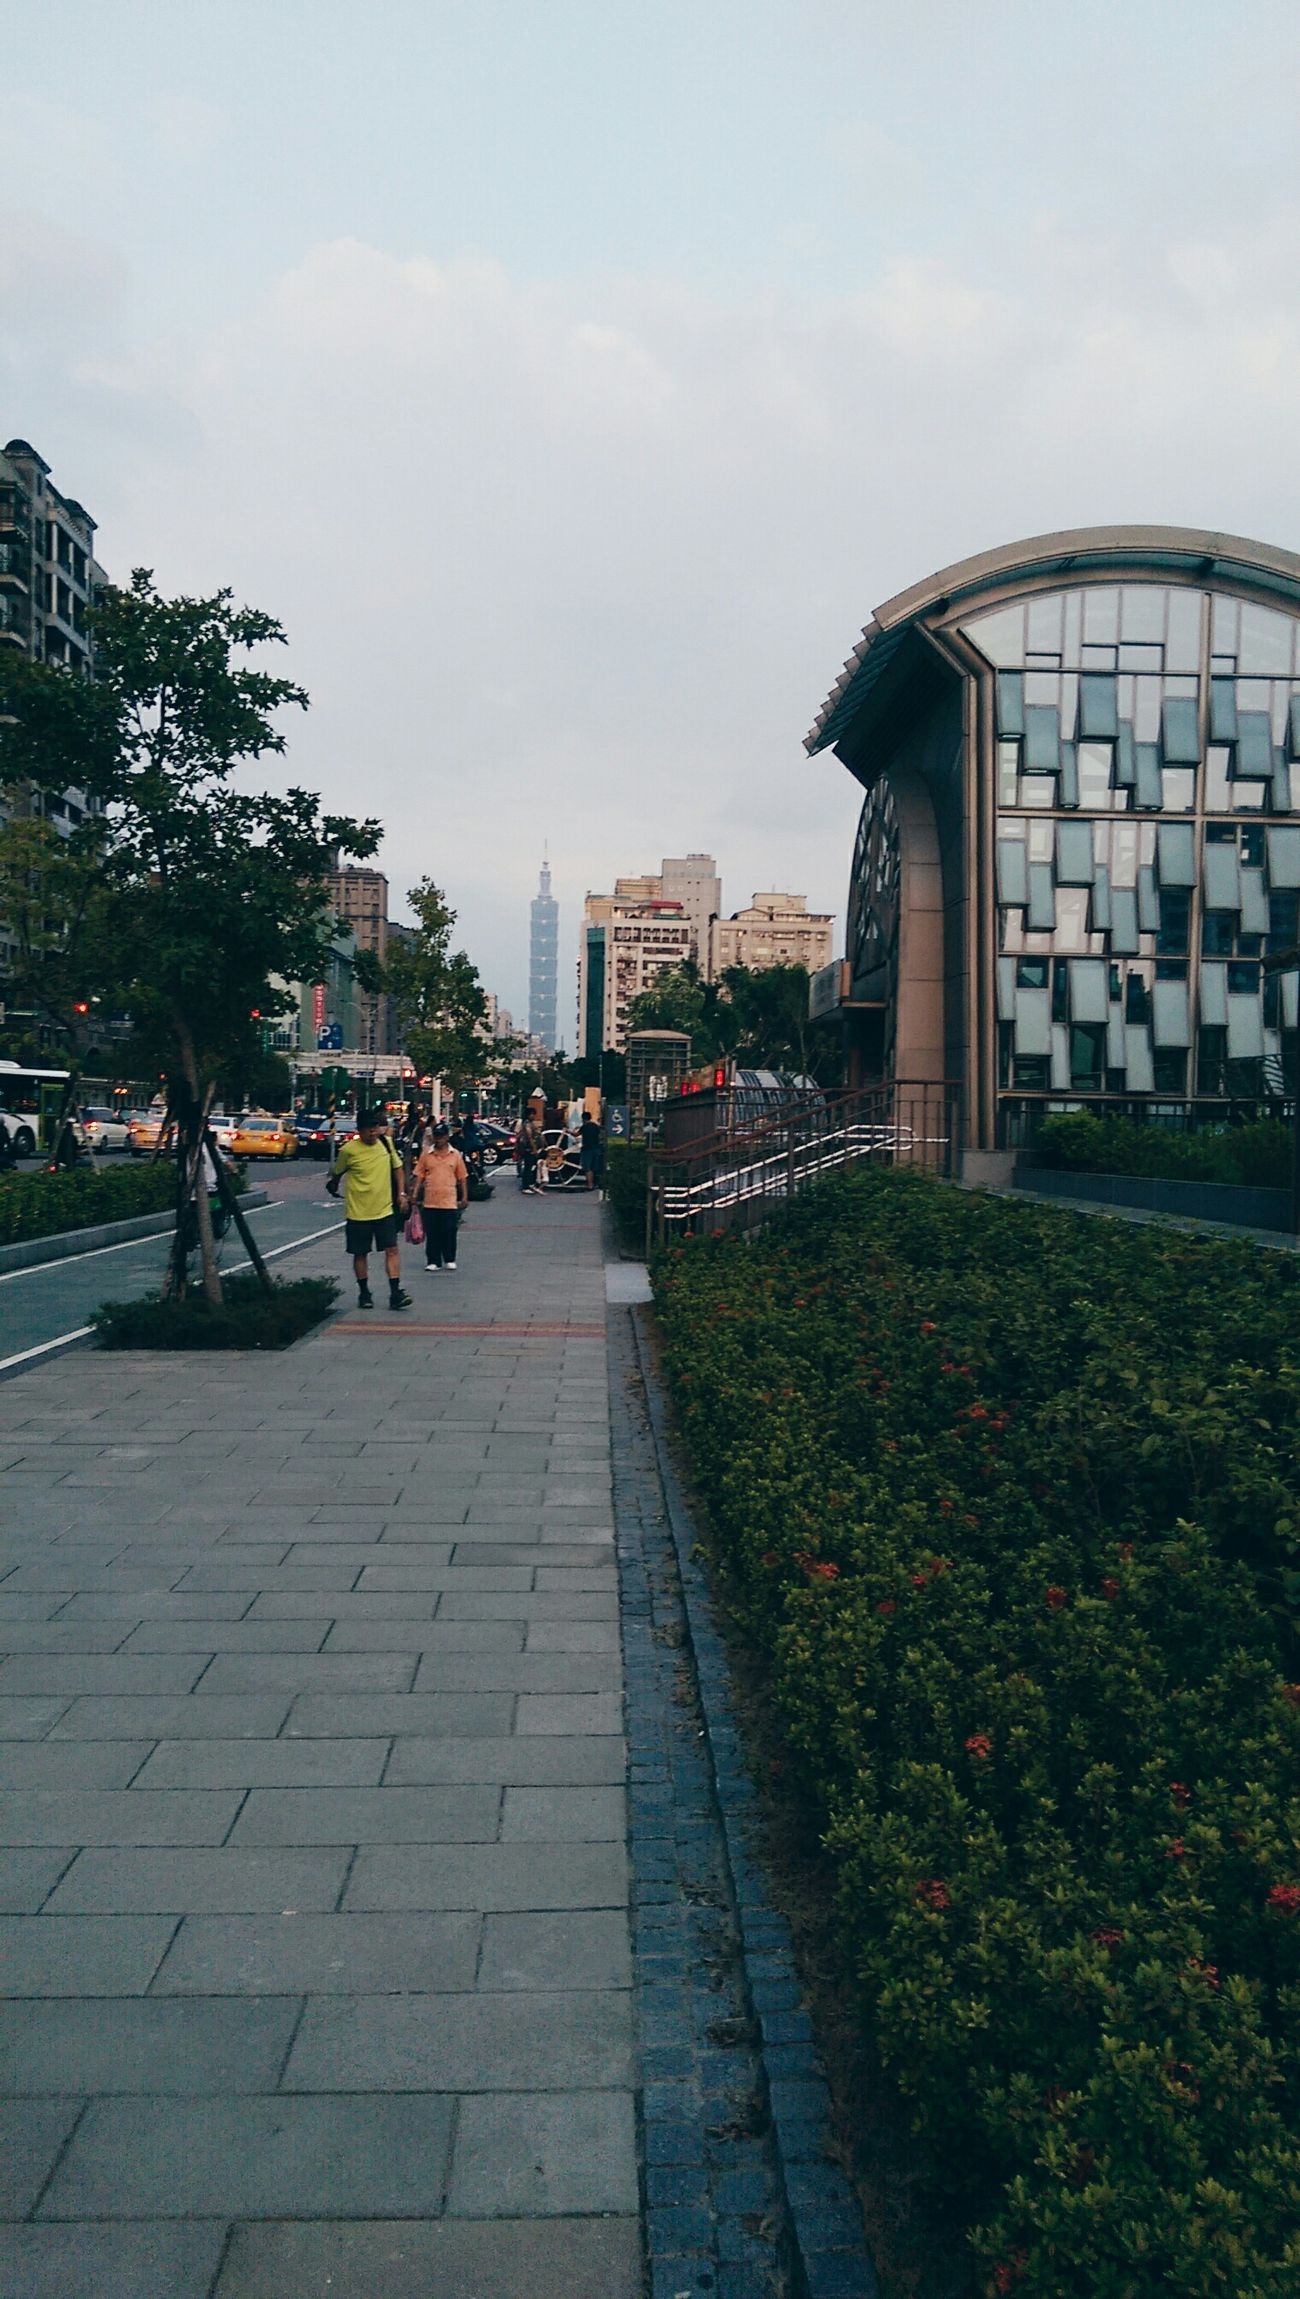 20150905 Gohome Sunset Taipei 101 VSCO Yolo Kate's Daily Hanging Out